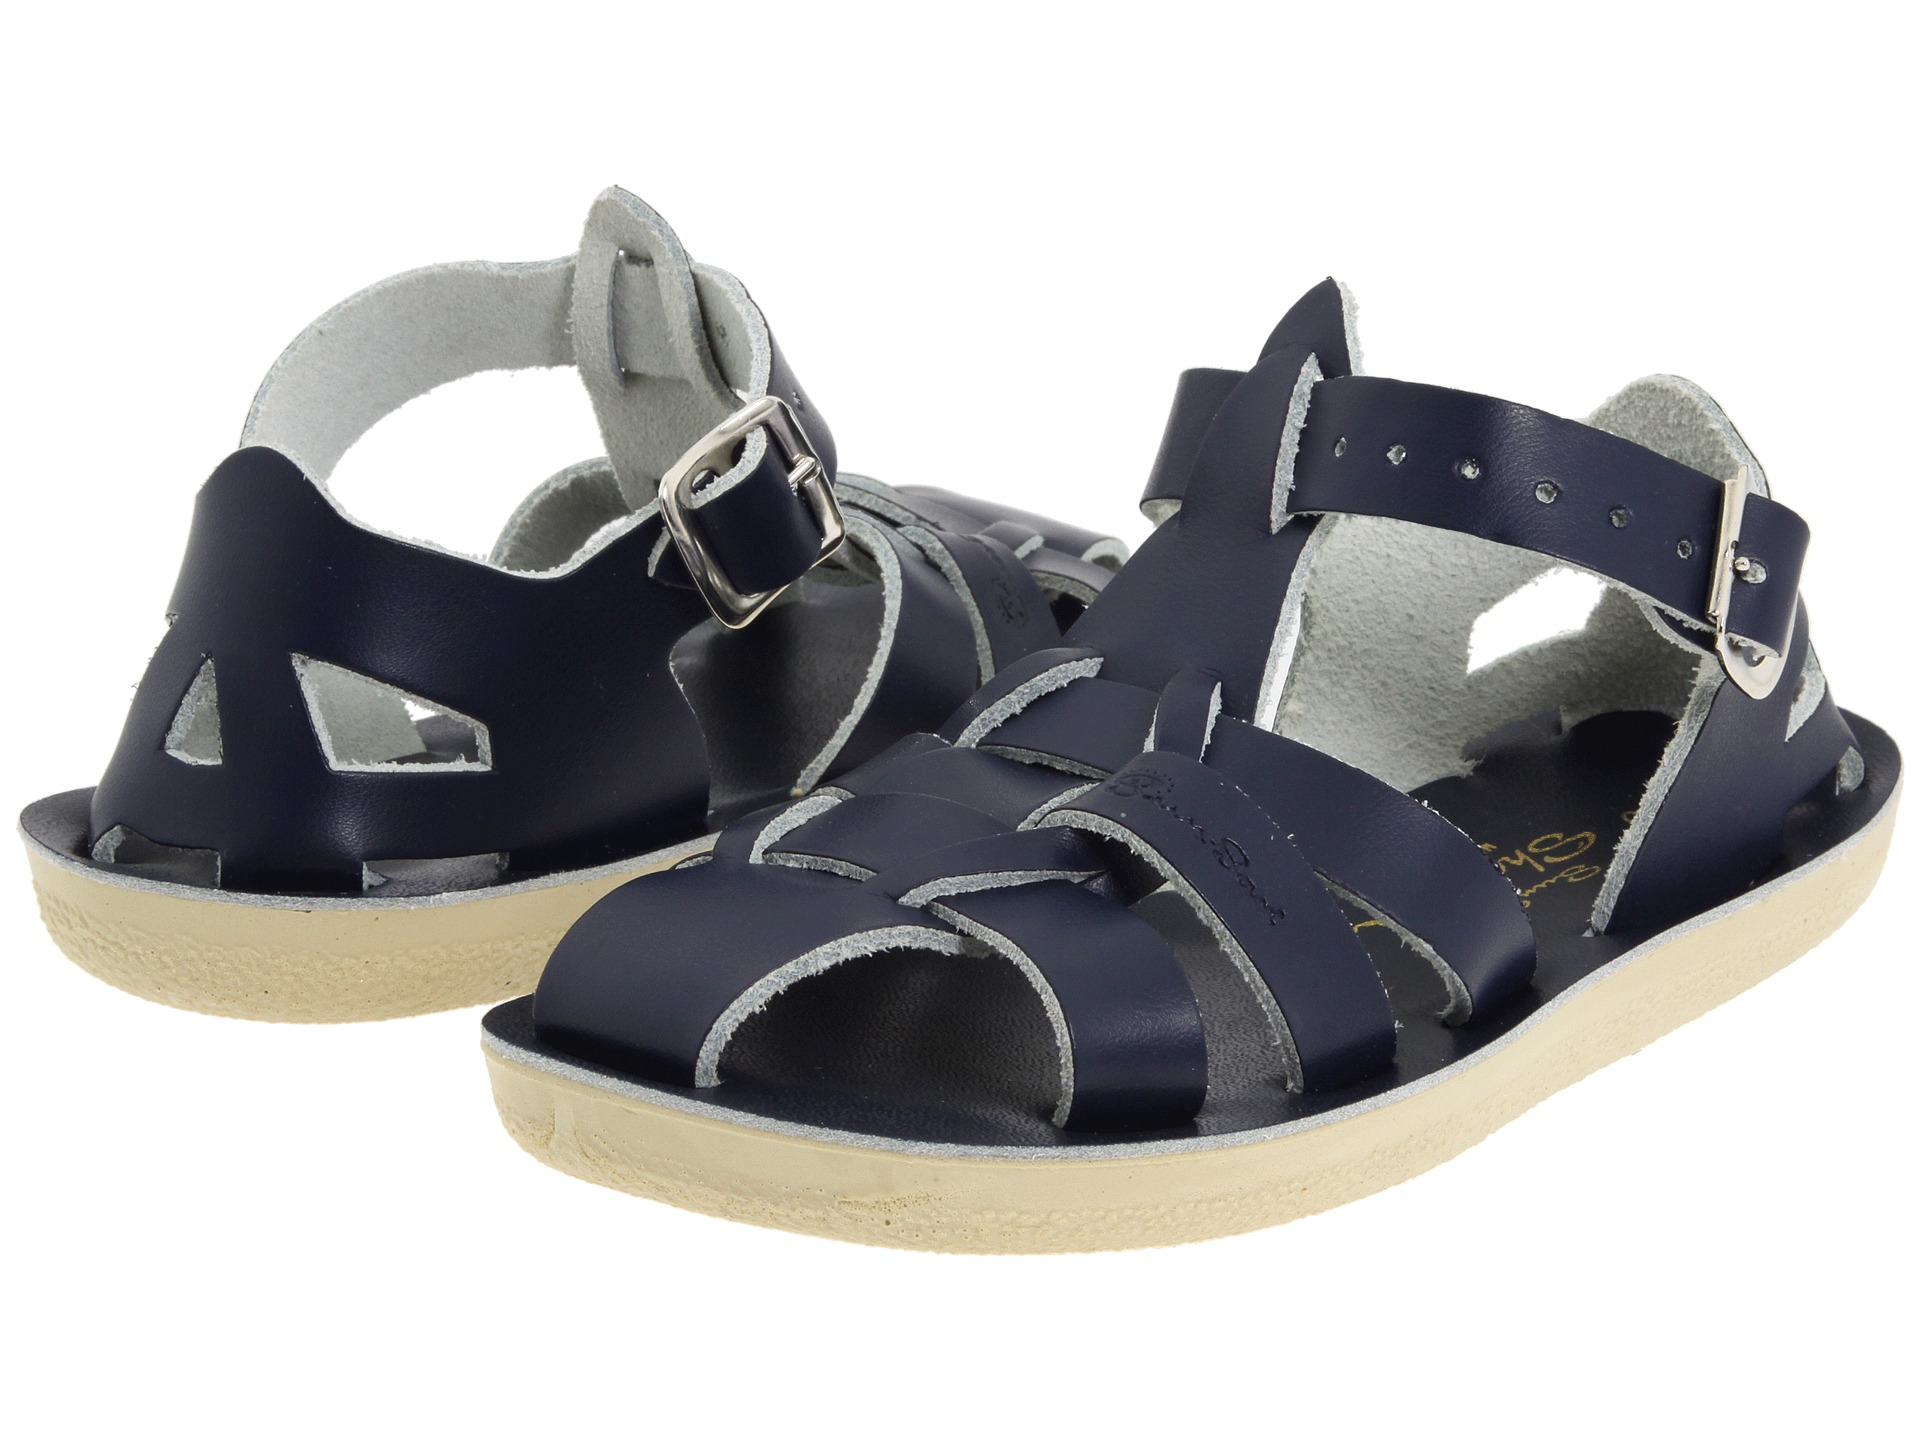 salt water sandal by hoy shoes sun san sharks toddler little kid free shipping. Black Bedroom Furniture Sets. Home Design Ideas